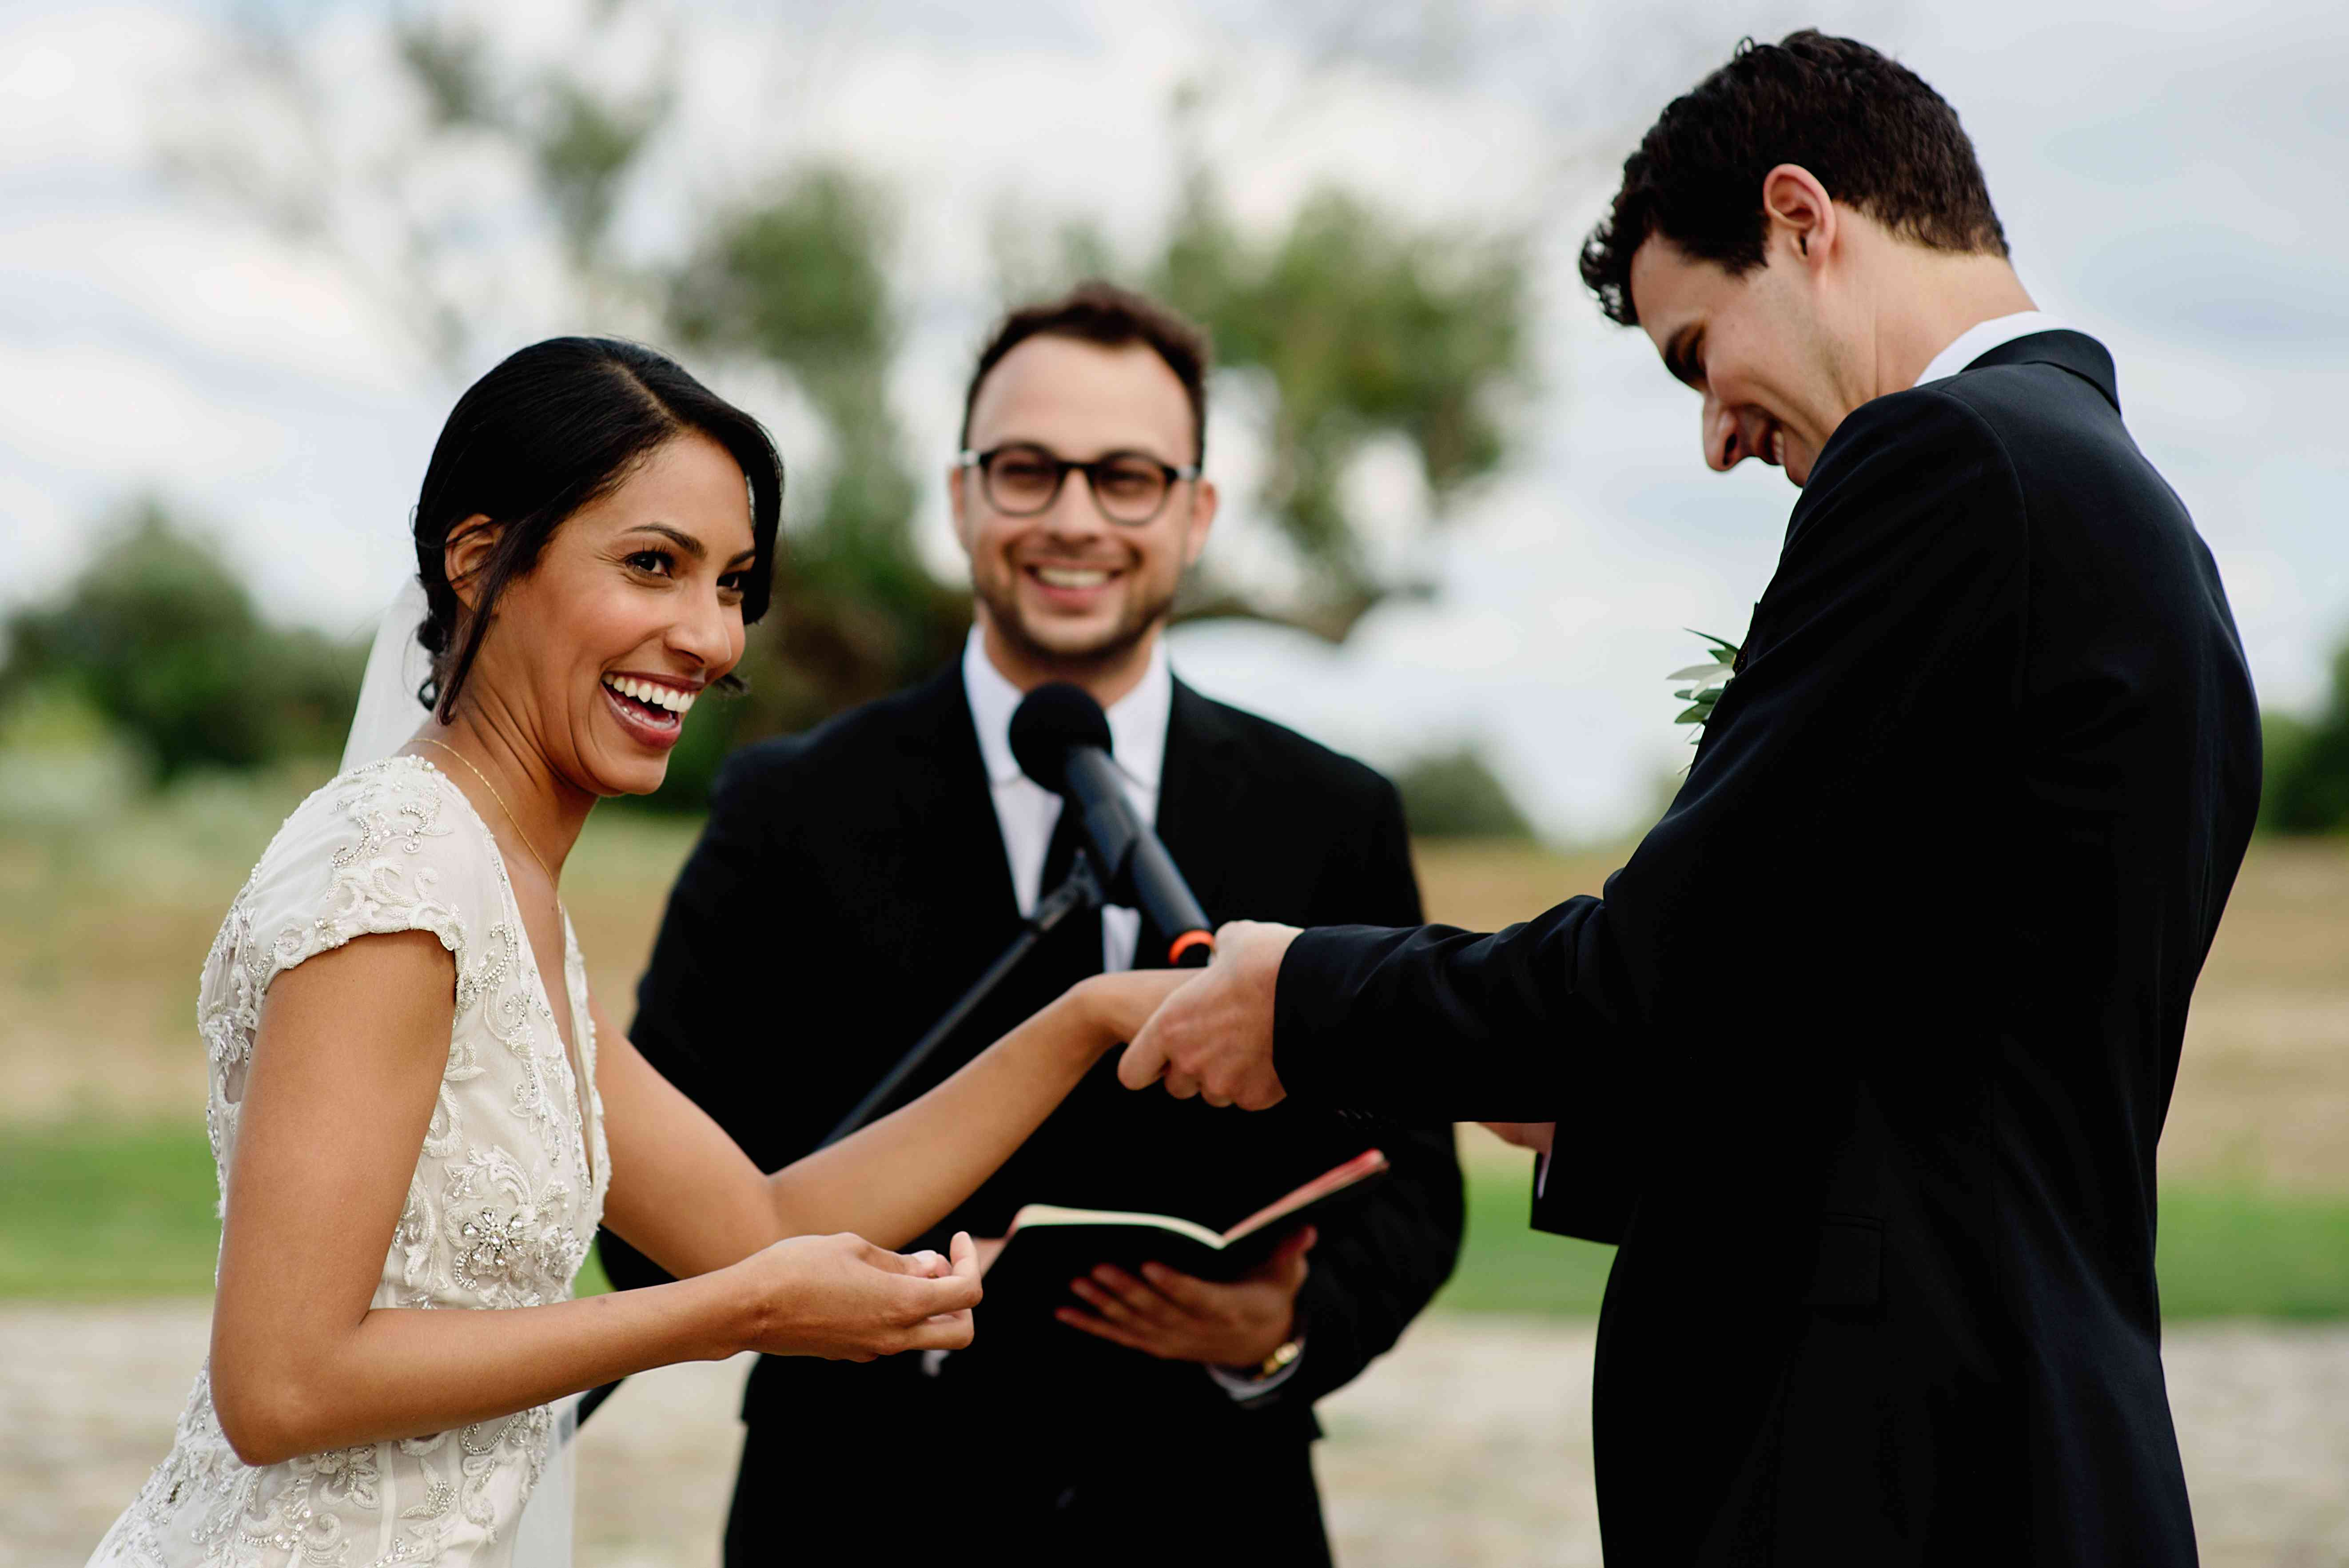 <p>Bride and groom during vows</p><br><br>